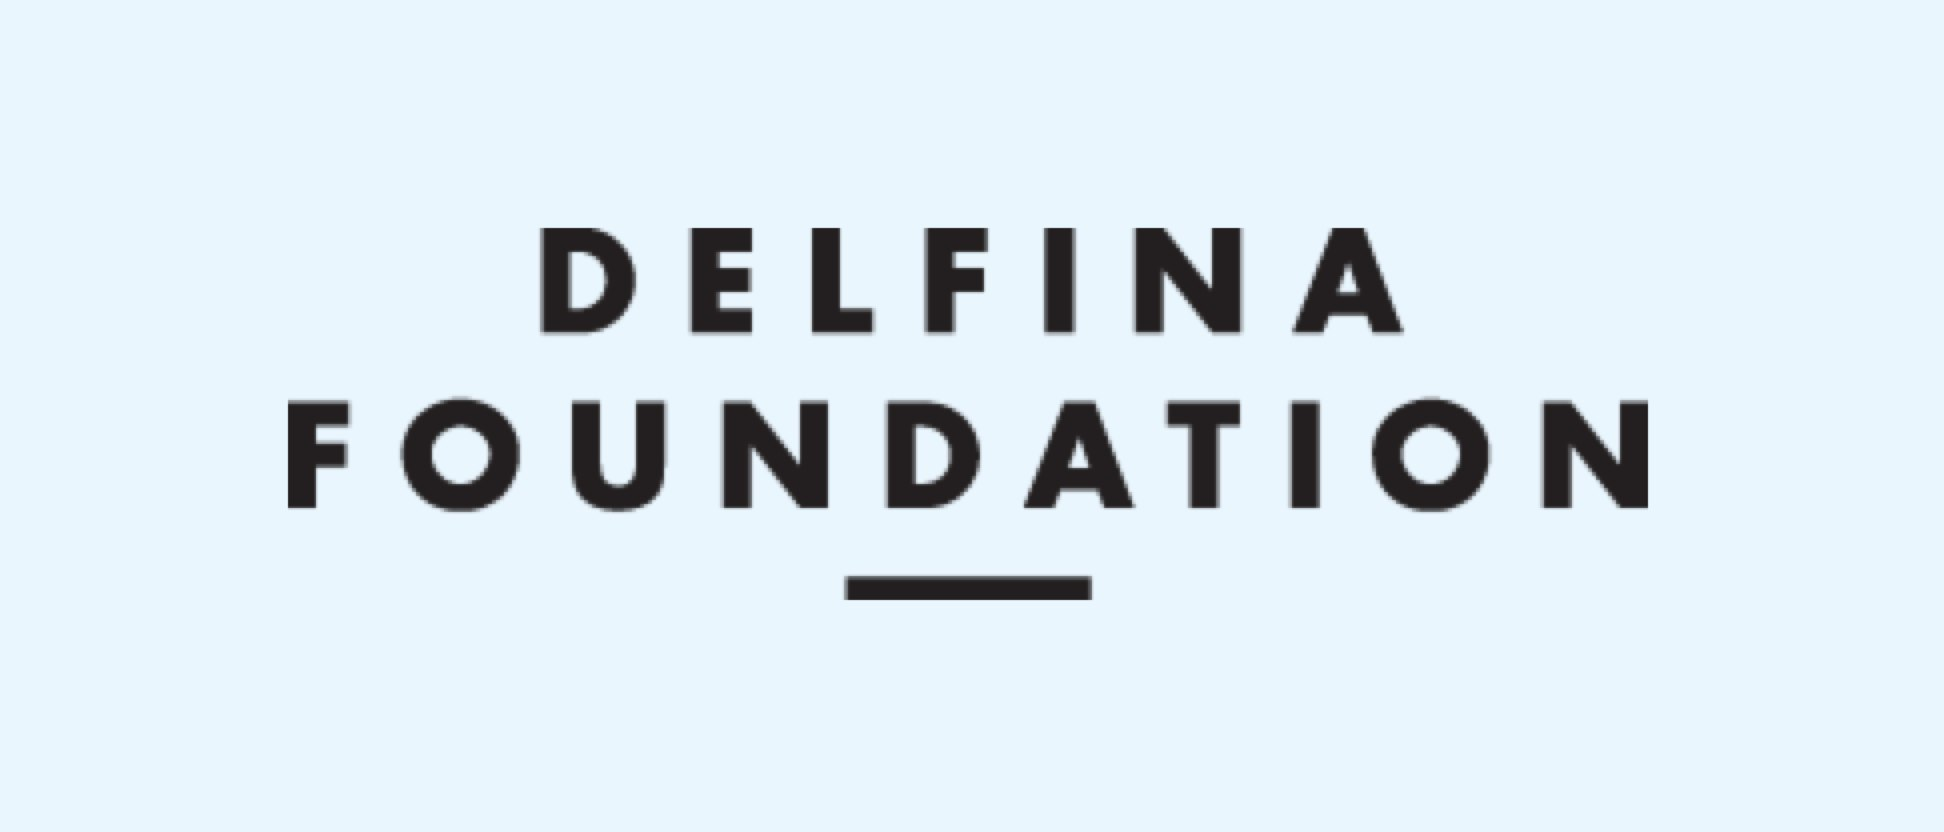 Delfina Foundation Exhibition